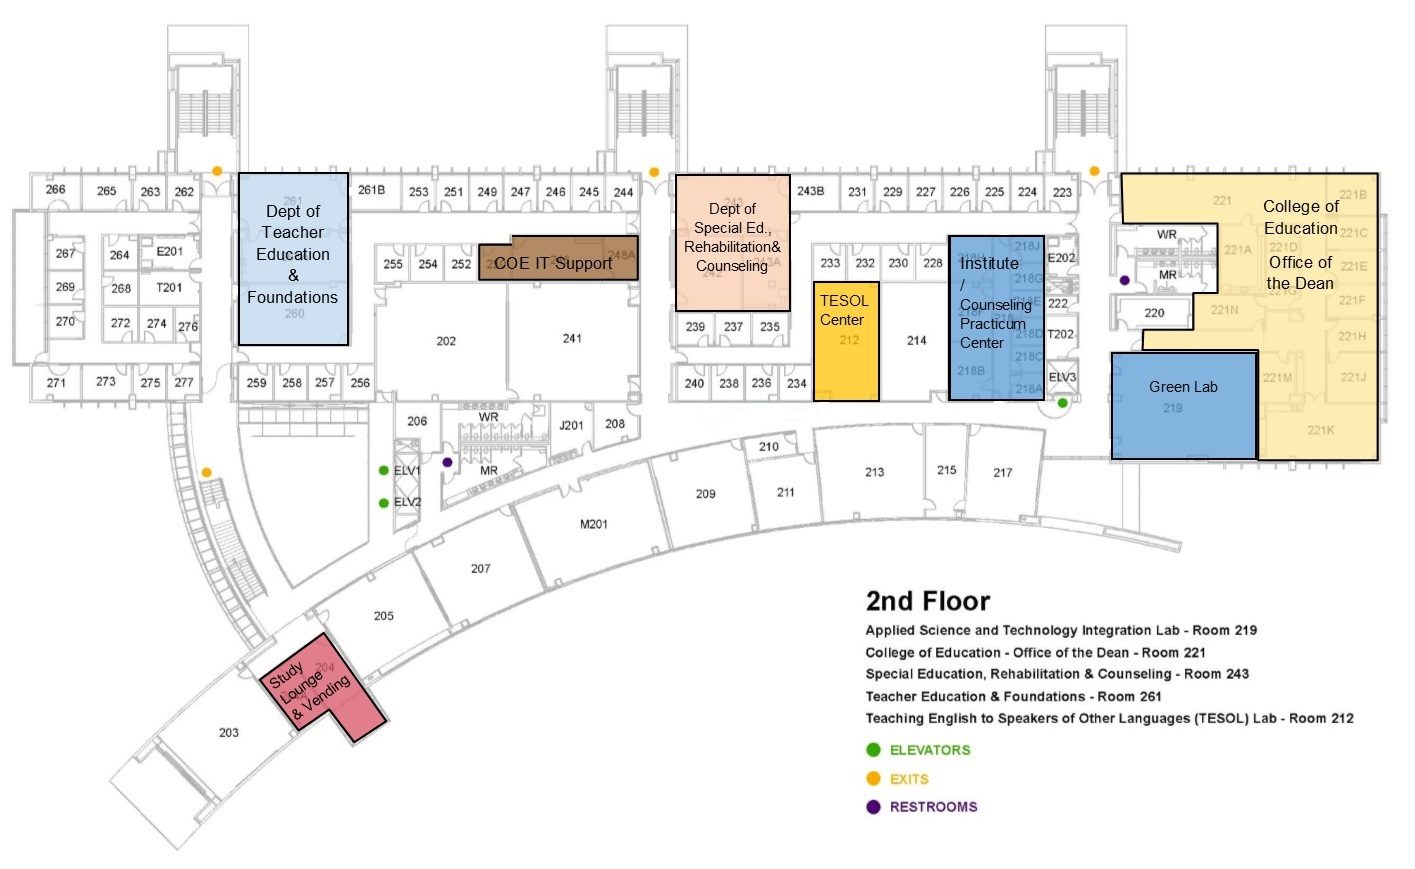 2nd Floor Map - College of Education Building